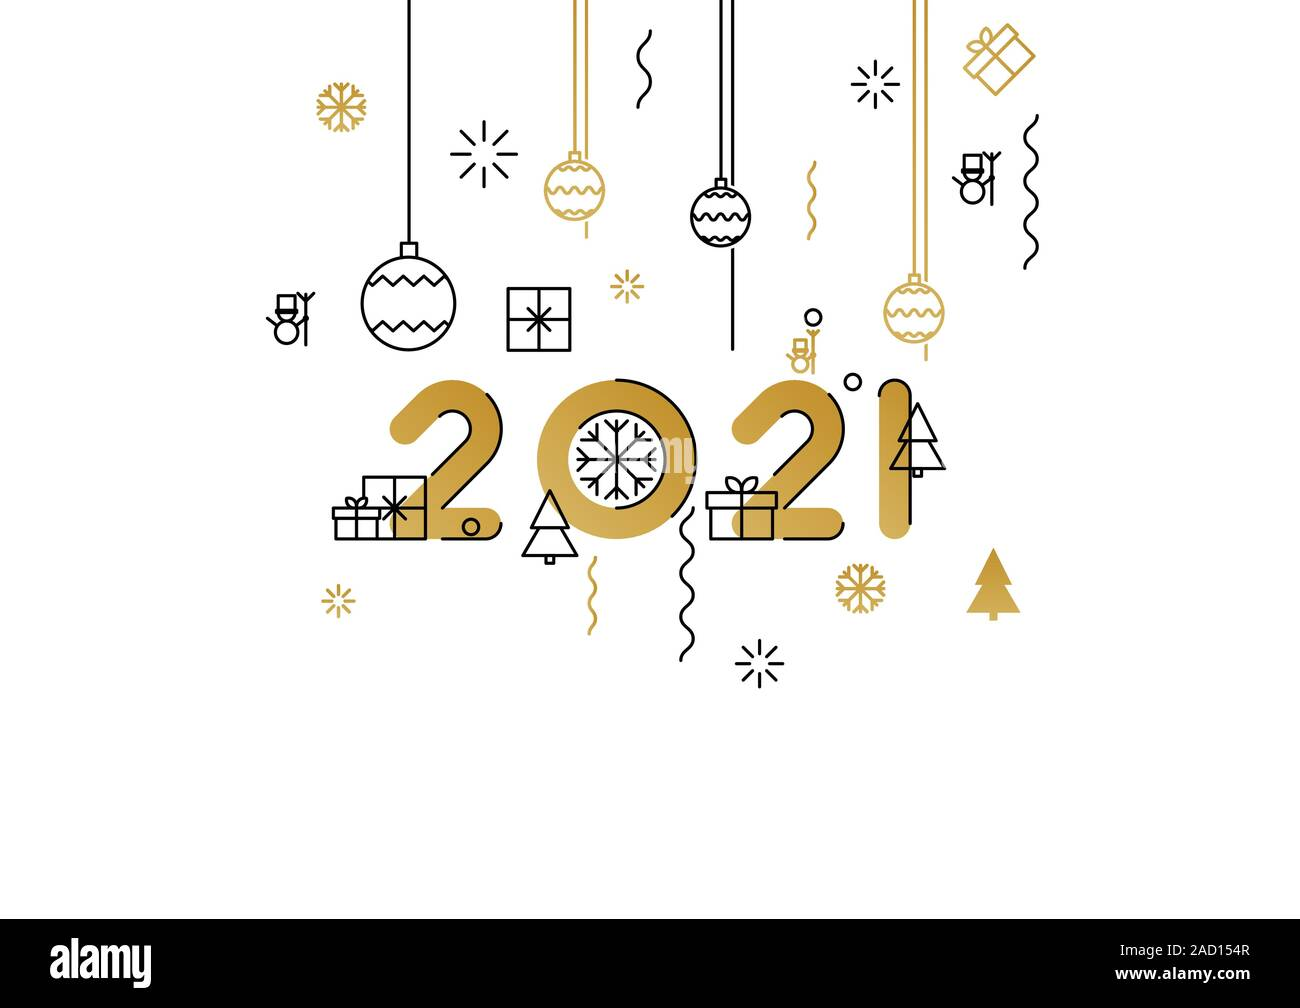 happy new year 2021 greeting card vector illustration in a flat style for greeting cards banner invitations posters and website vector illustra stock vector image art alamy https www alamy com happy new year 2021 greeting card vector illustration in a flat style for greeting cards banner invitations posters and website vector illustra image335013527 html